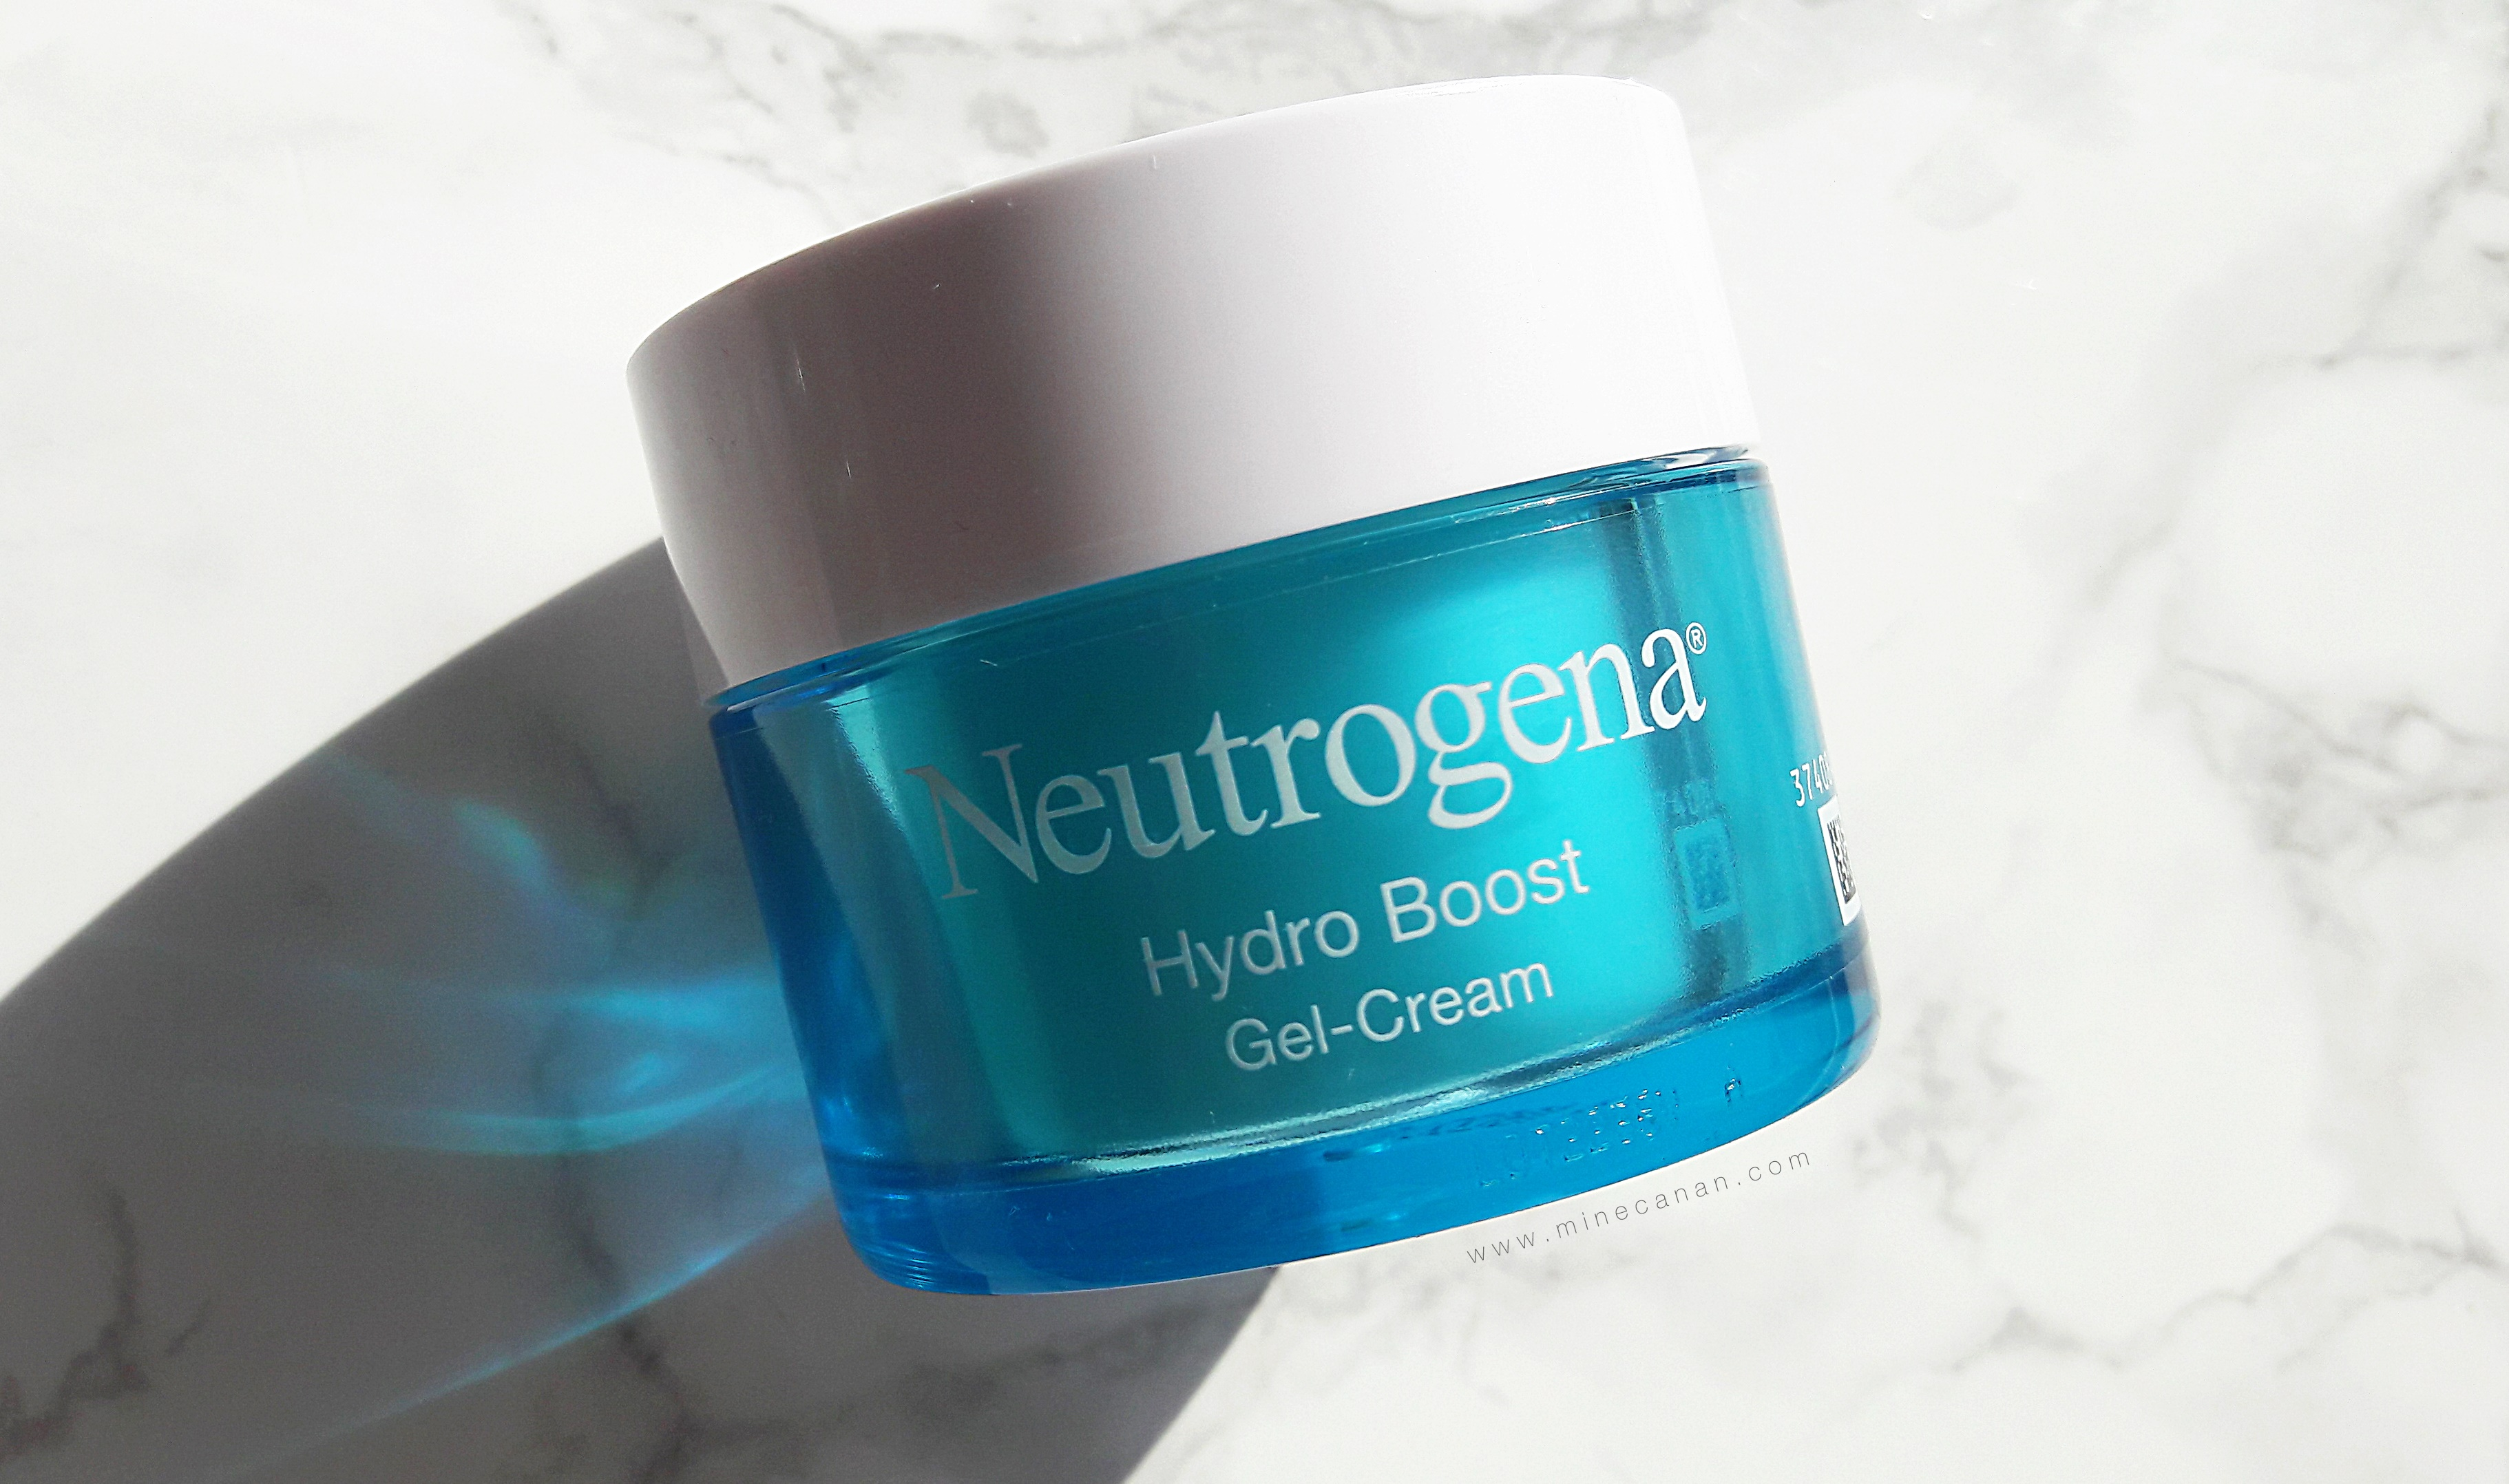 Neutrogena Hydro Boost Water Gel | Blog by Mine Canan